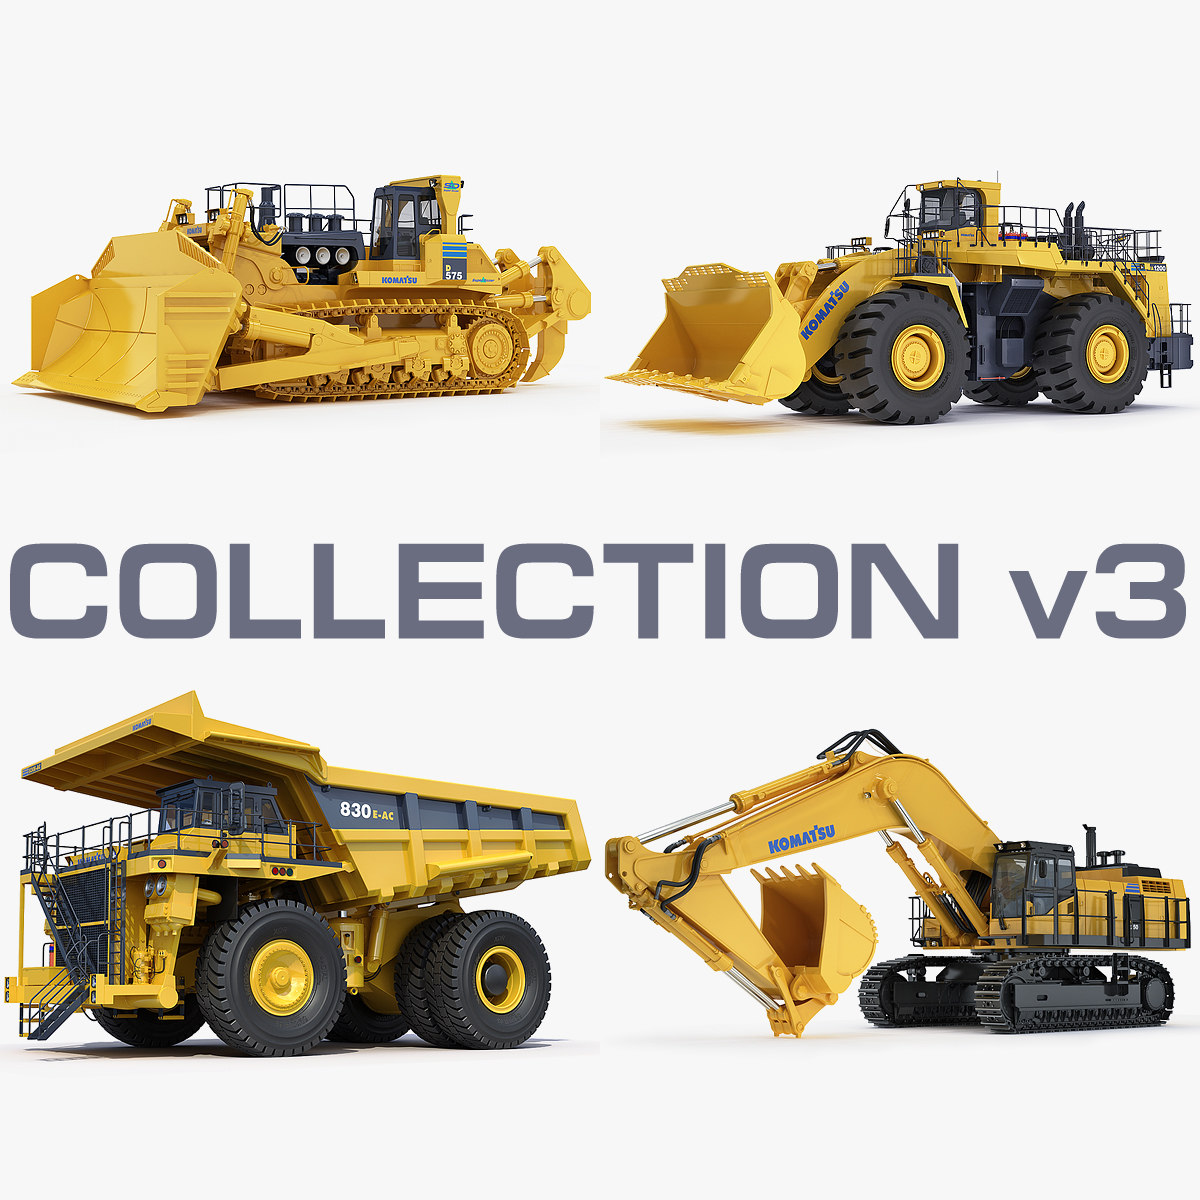 Collection_mining_heavy_vehicle.jpg